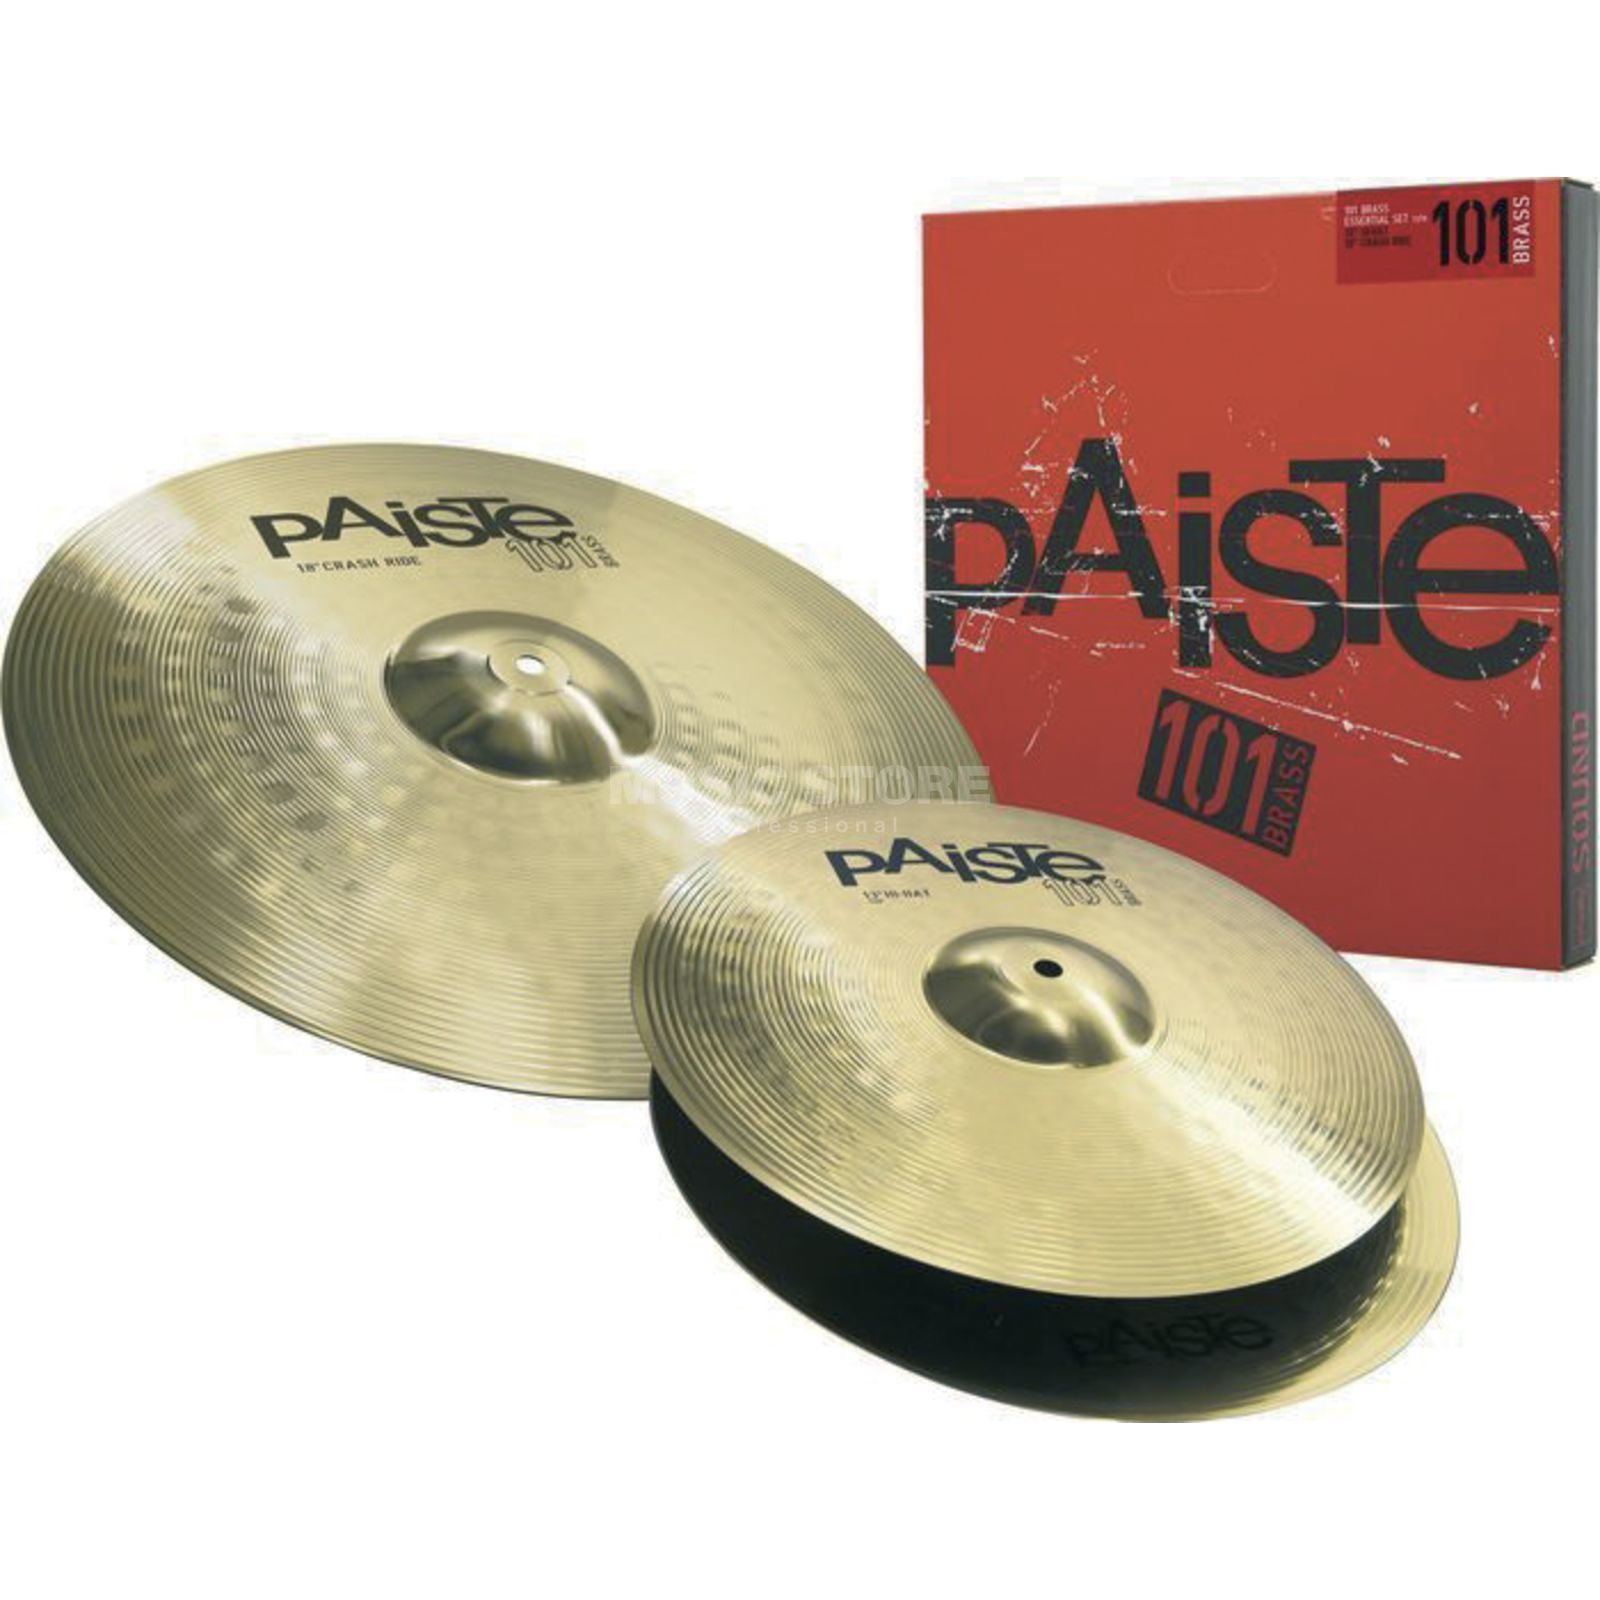 "Paiste 101 Brass Cymbal Set Essential 13"" HiHat, 18"" Crash Ride Produktbild"